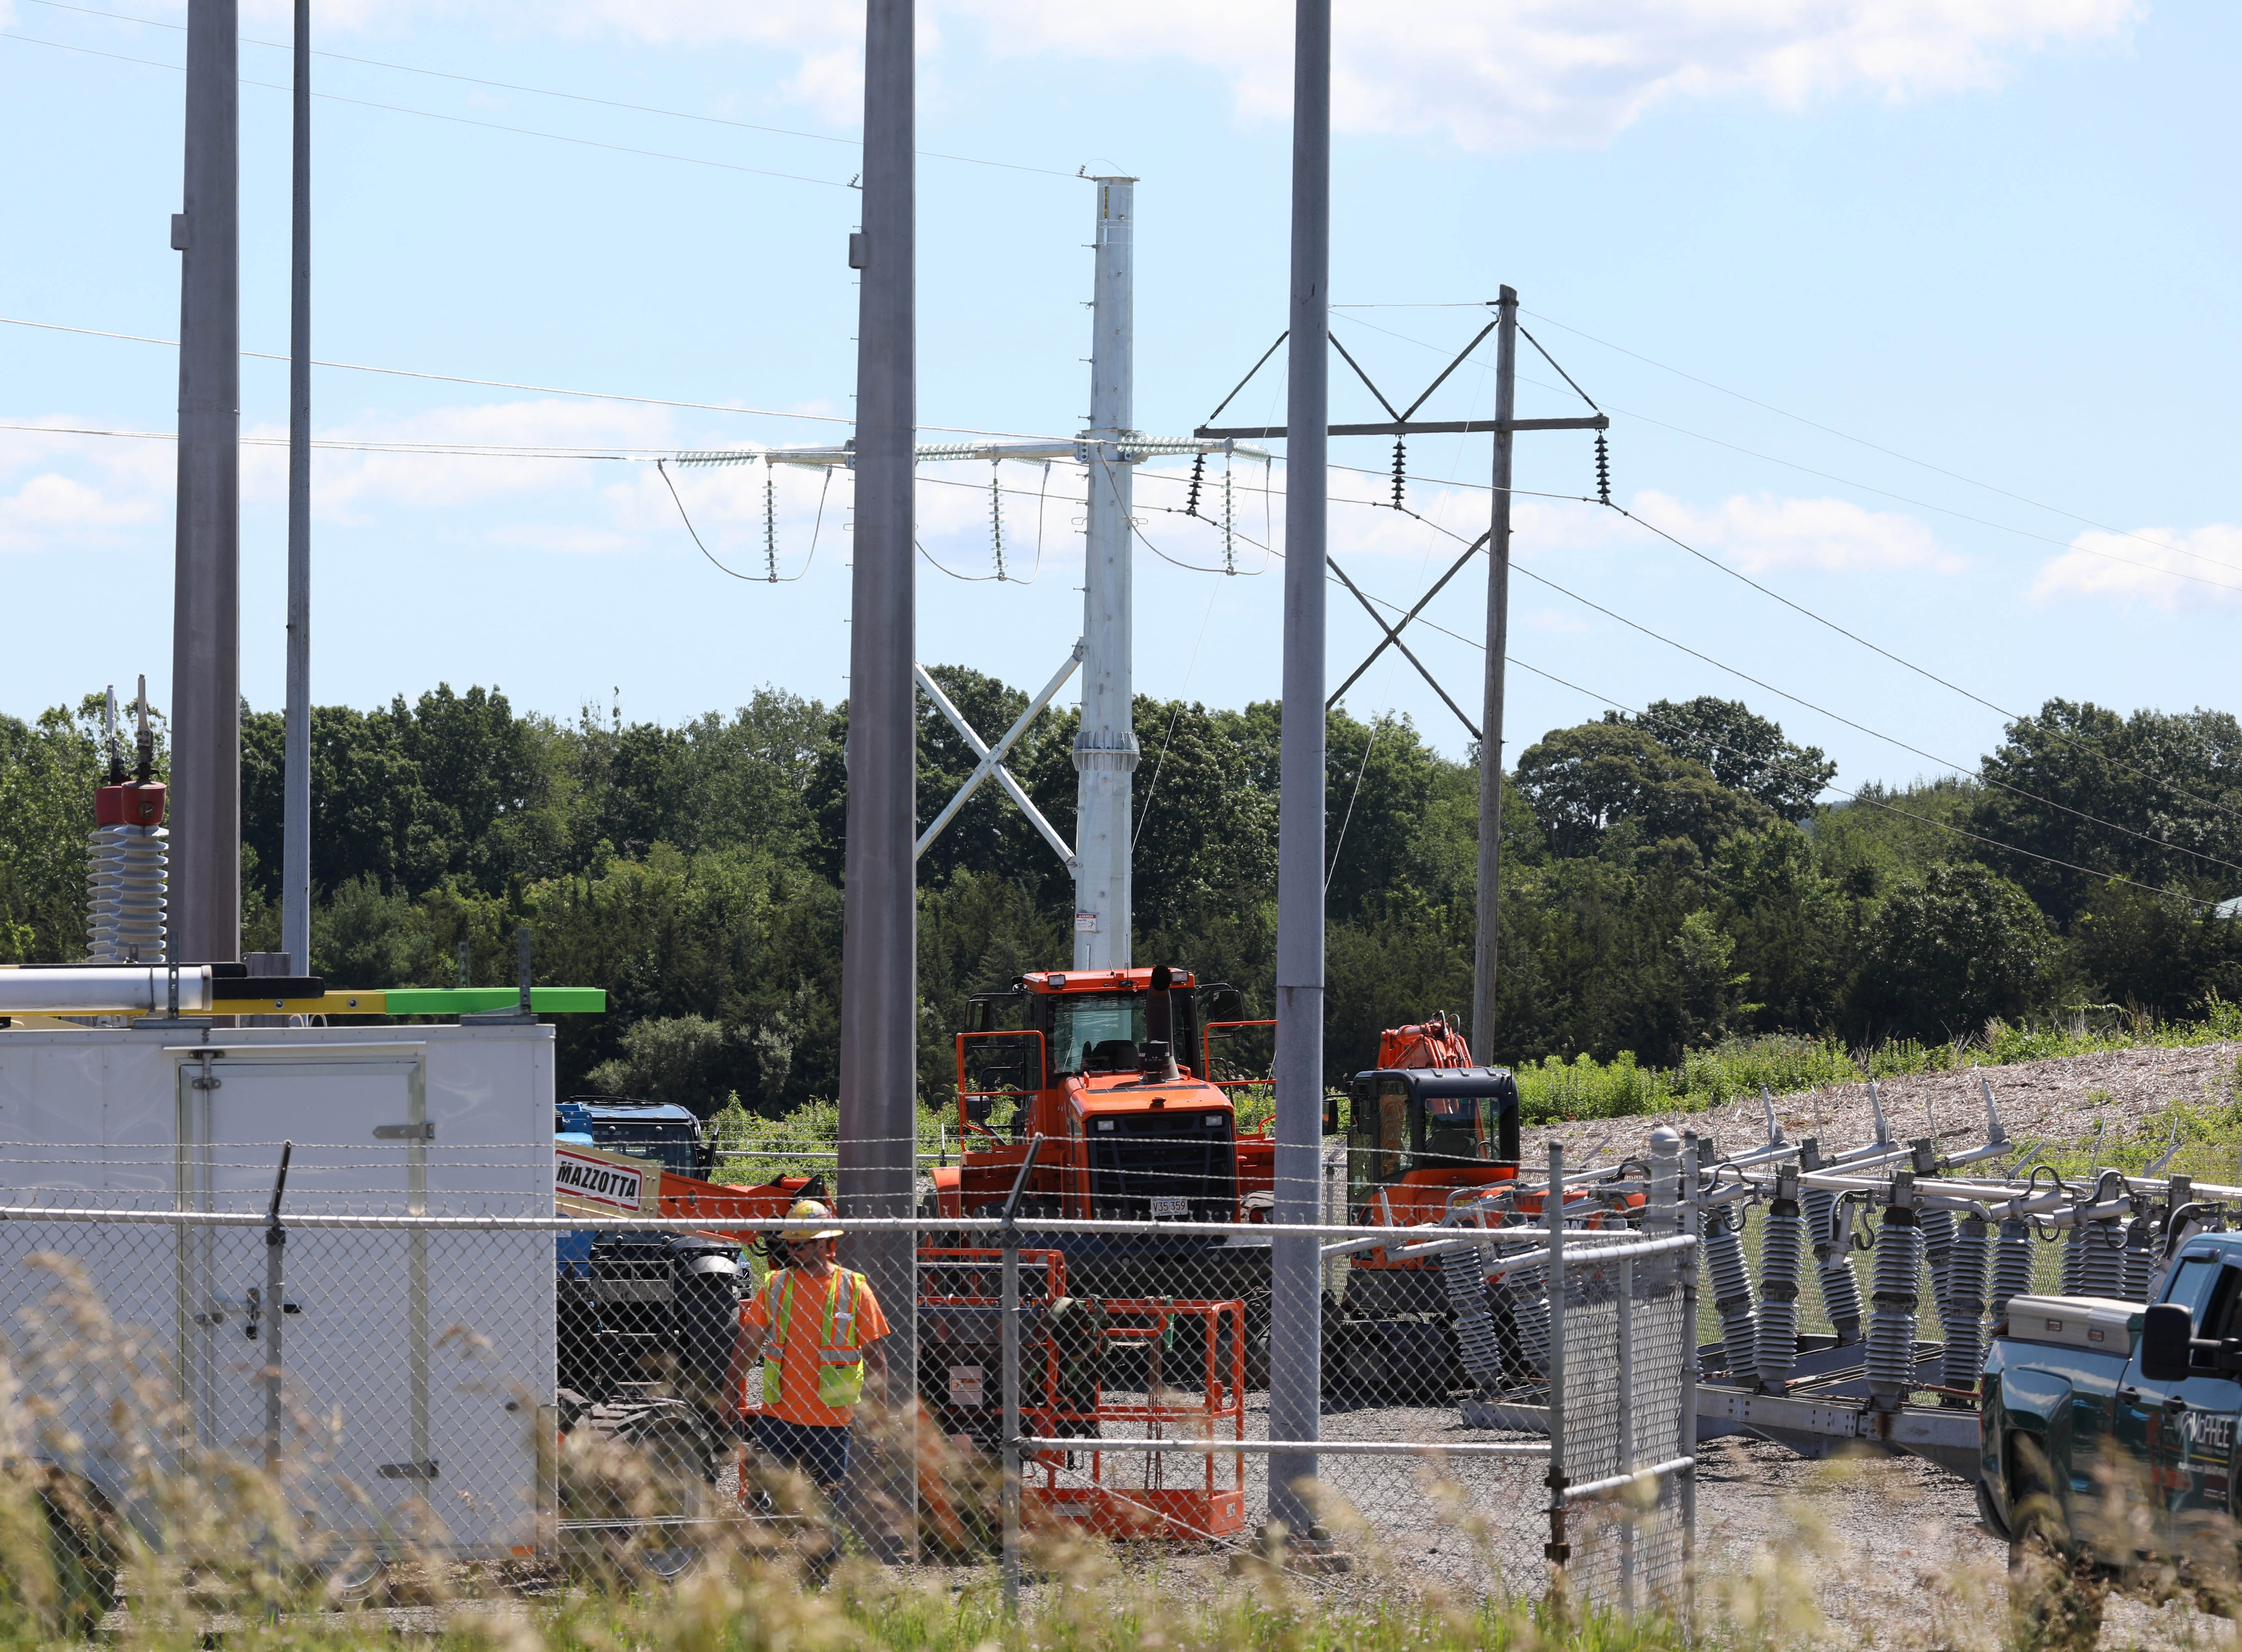 The Churchtown switching station in Claverack being modernized by a crew from New York Transco on June 24, 2021.